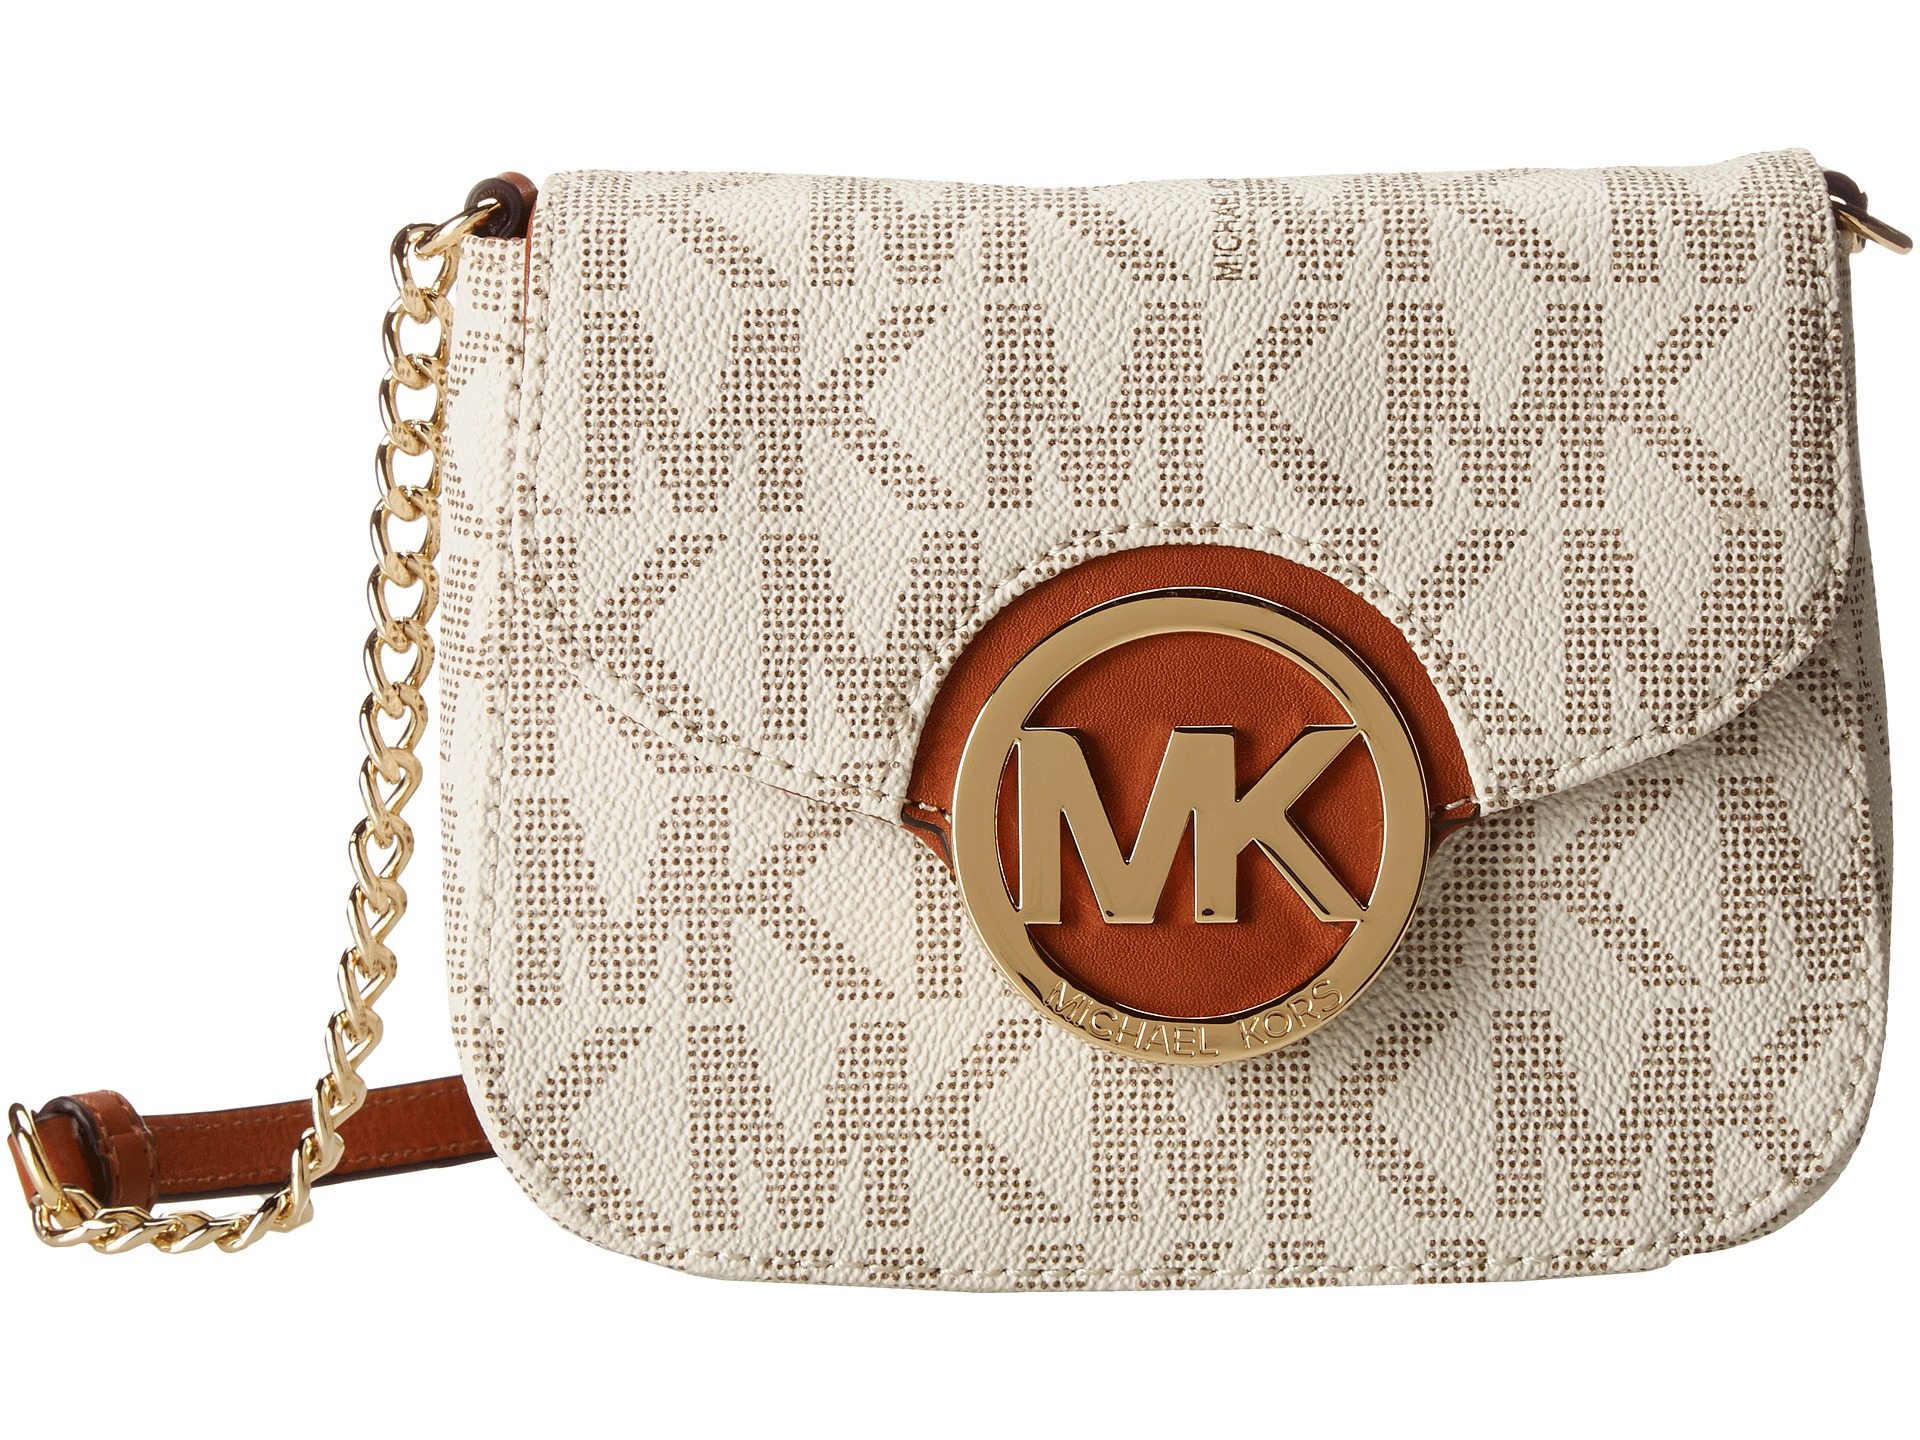 0d2a9f4f7899 Gallery. Previously sold at: Zappos · Women's Michael By Michael Kors Fulton